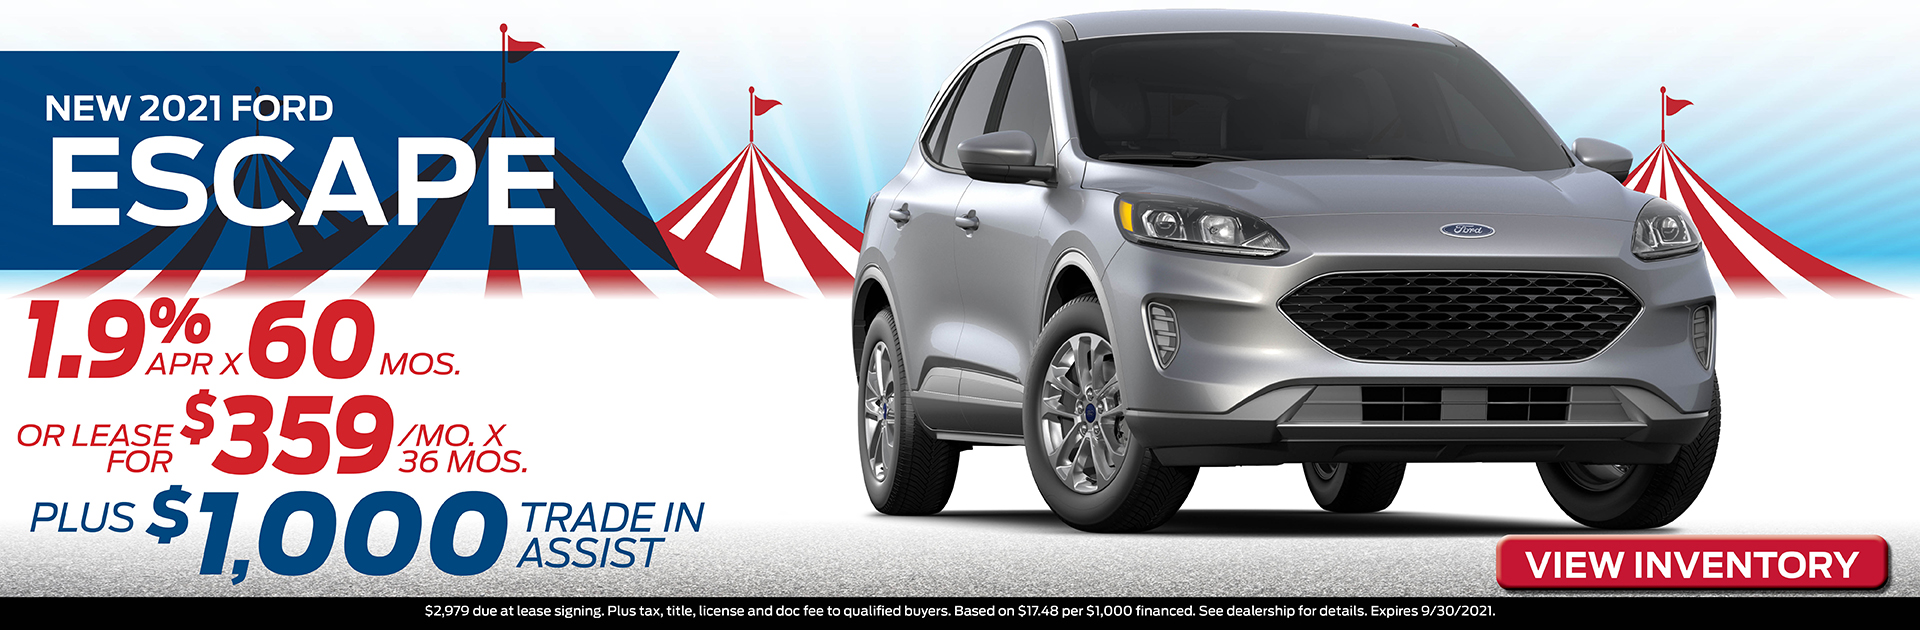 2021 Ford Escape Finance or Lease Offer | Hawk Ford of St. Charles